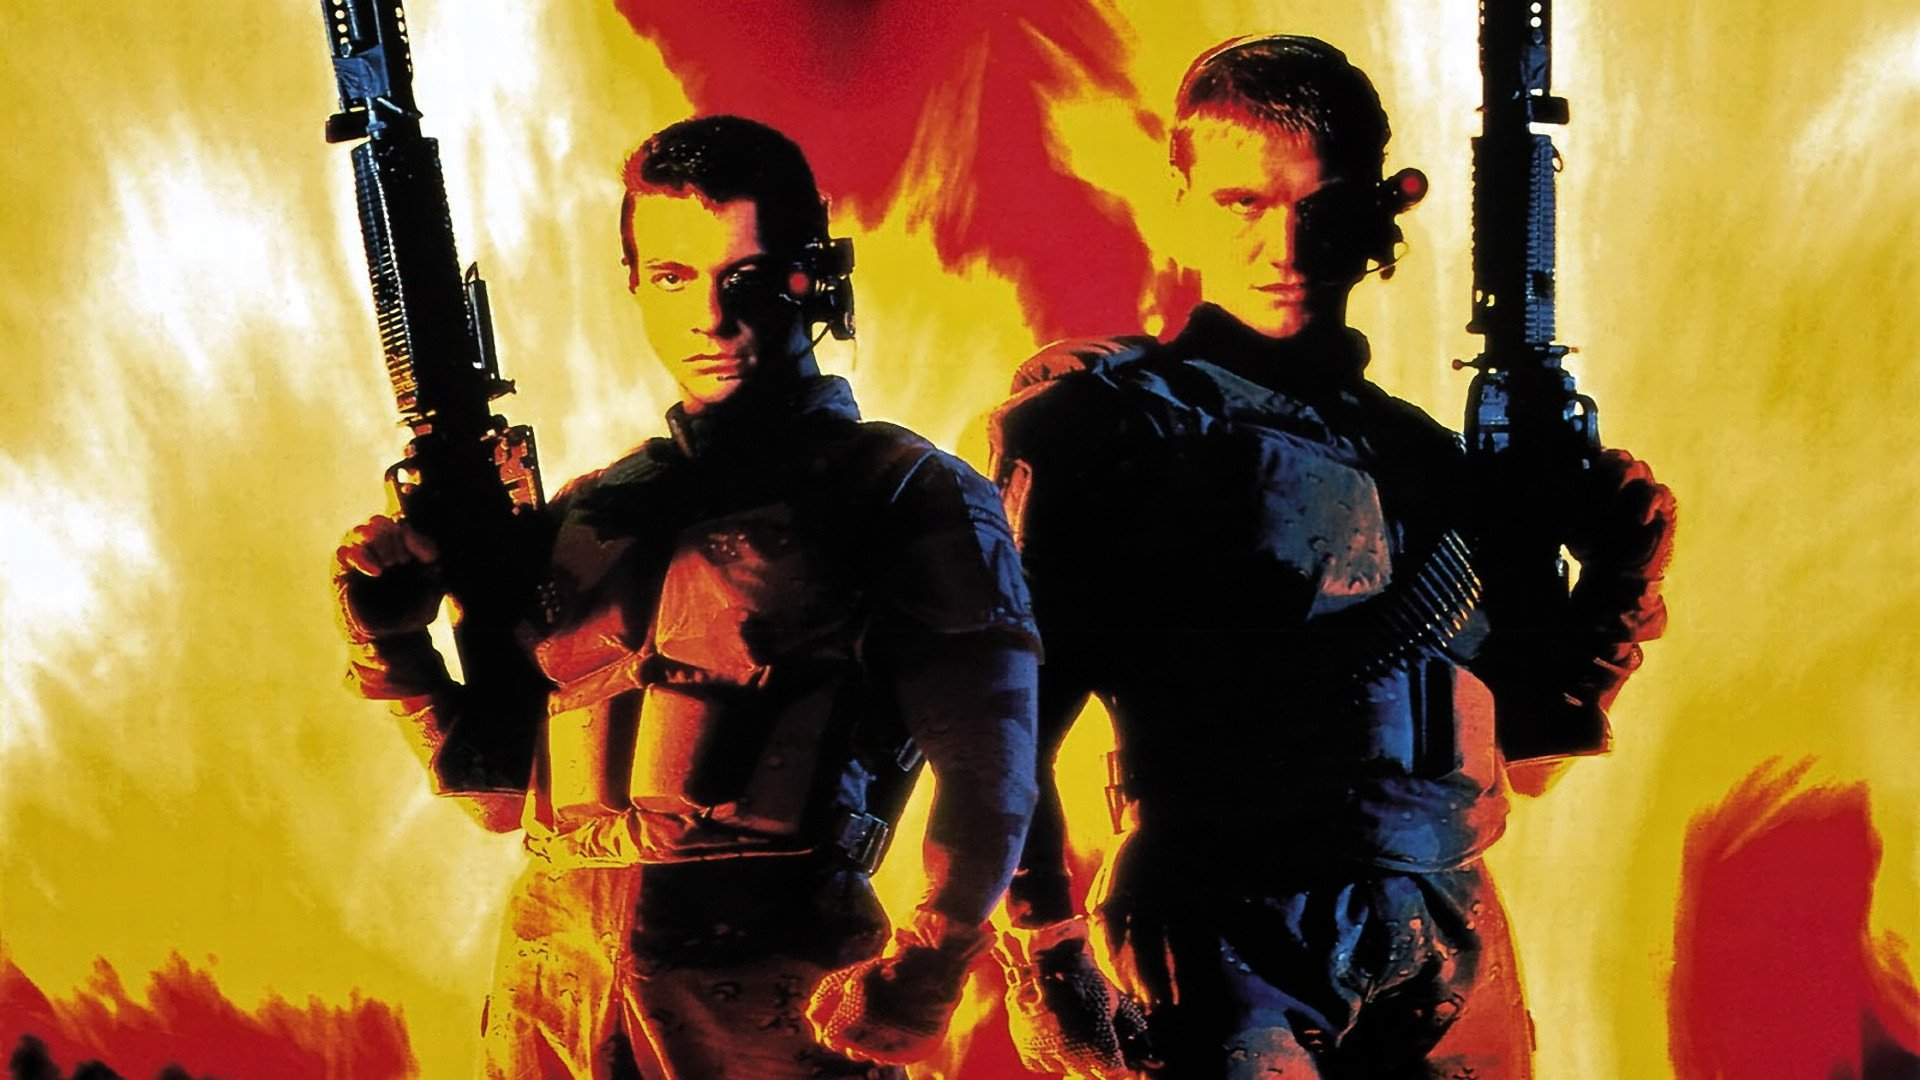 4 Universal Soldier Hd Wallpapers Background Images Wallpaper